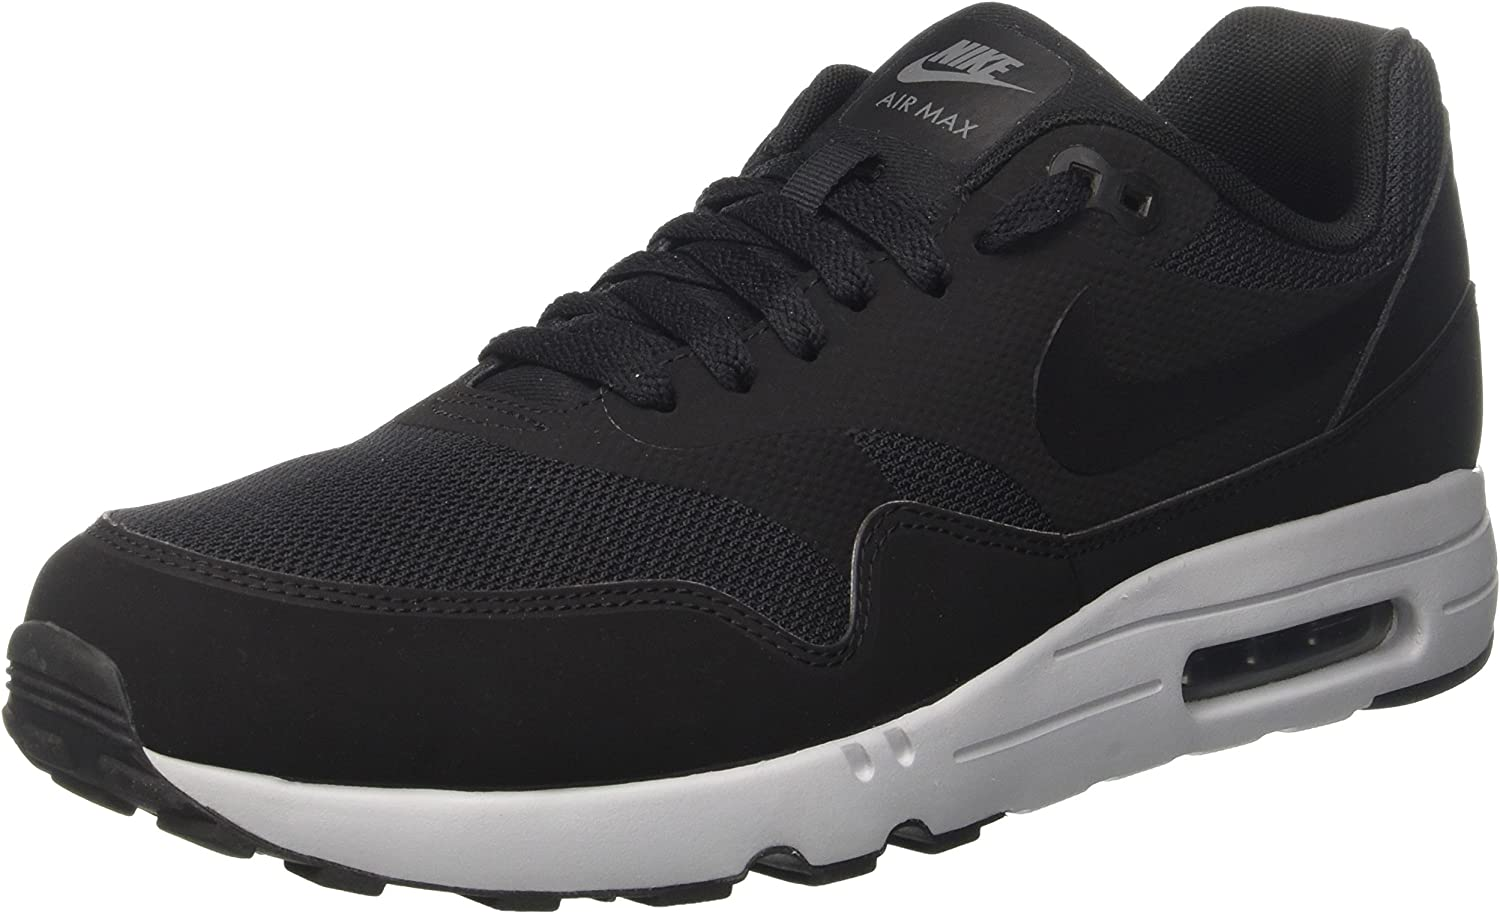 Nike Men's Air Max 1 Ultra 2.0 Essential Running shoes